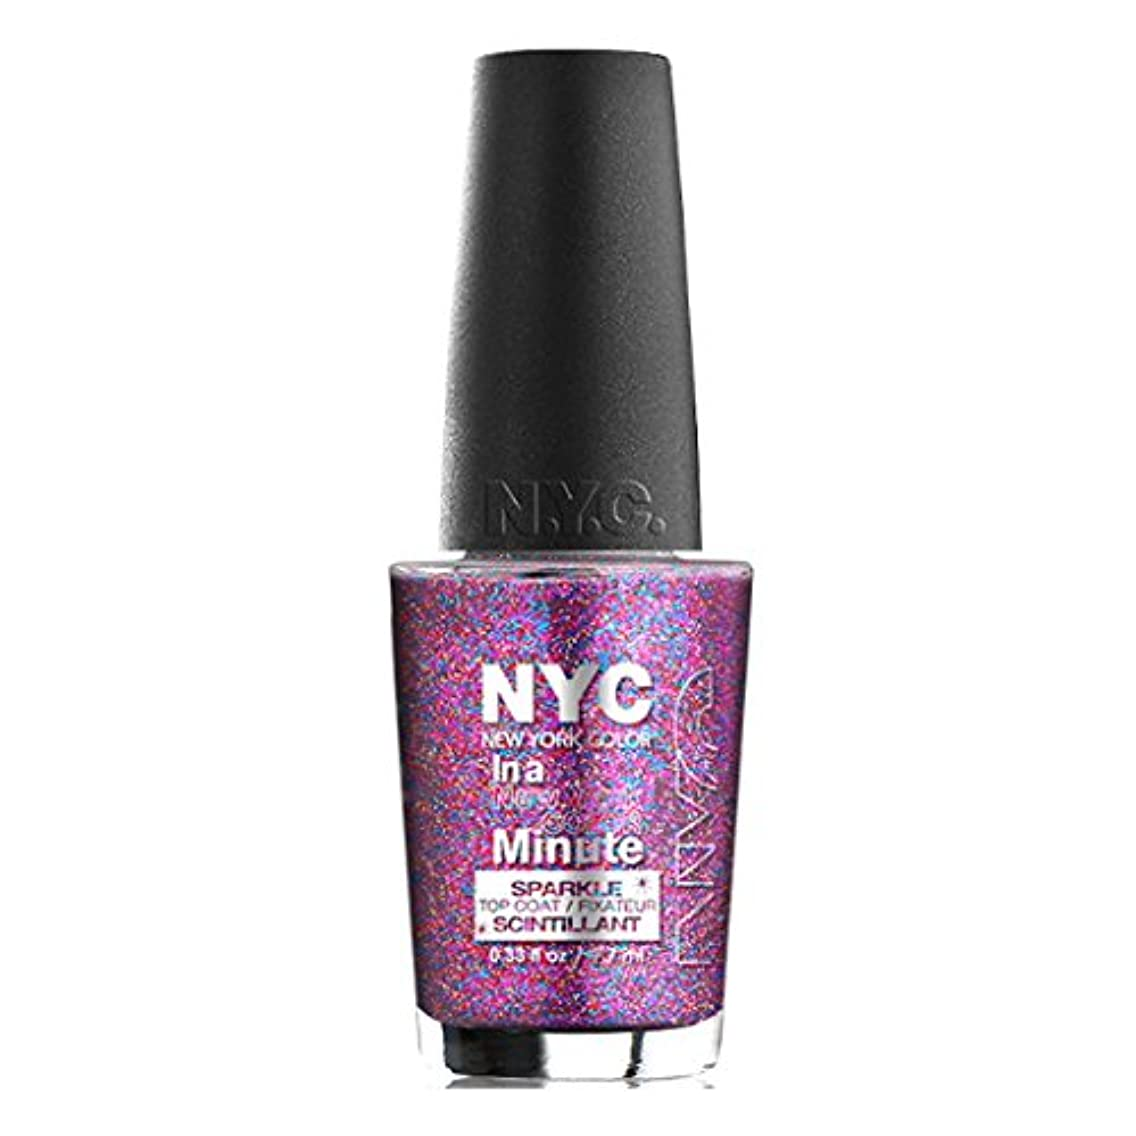 さようなら聖人図書館NYC In A New York Color Minute Sparkle Top Coat Big City Dazzle (並行輸入品)